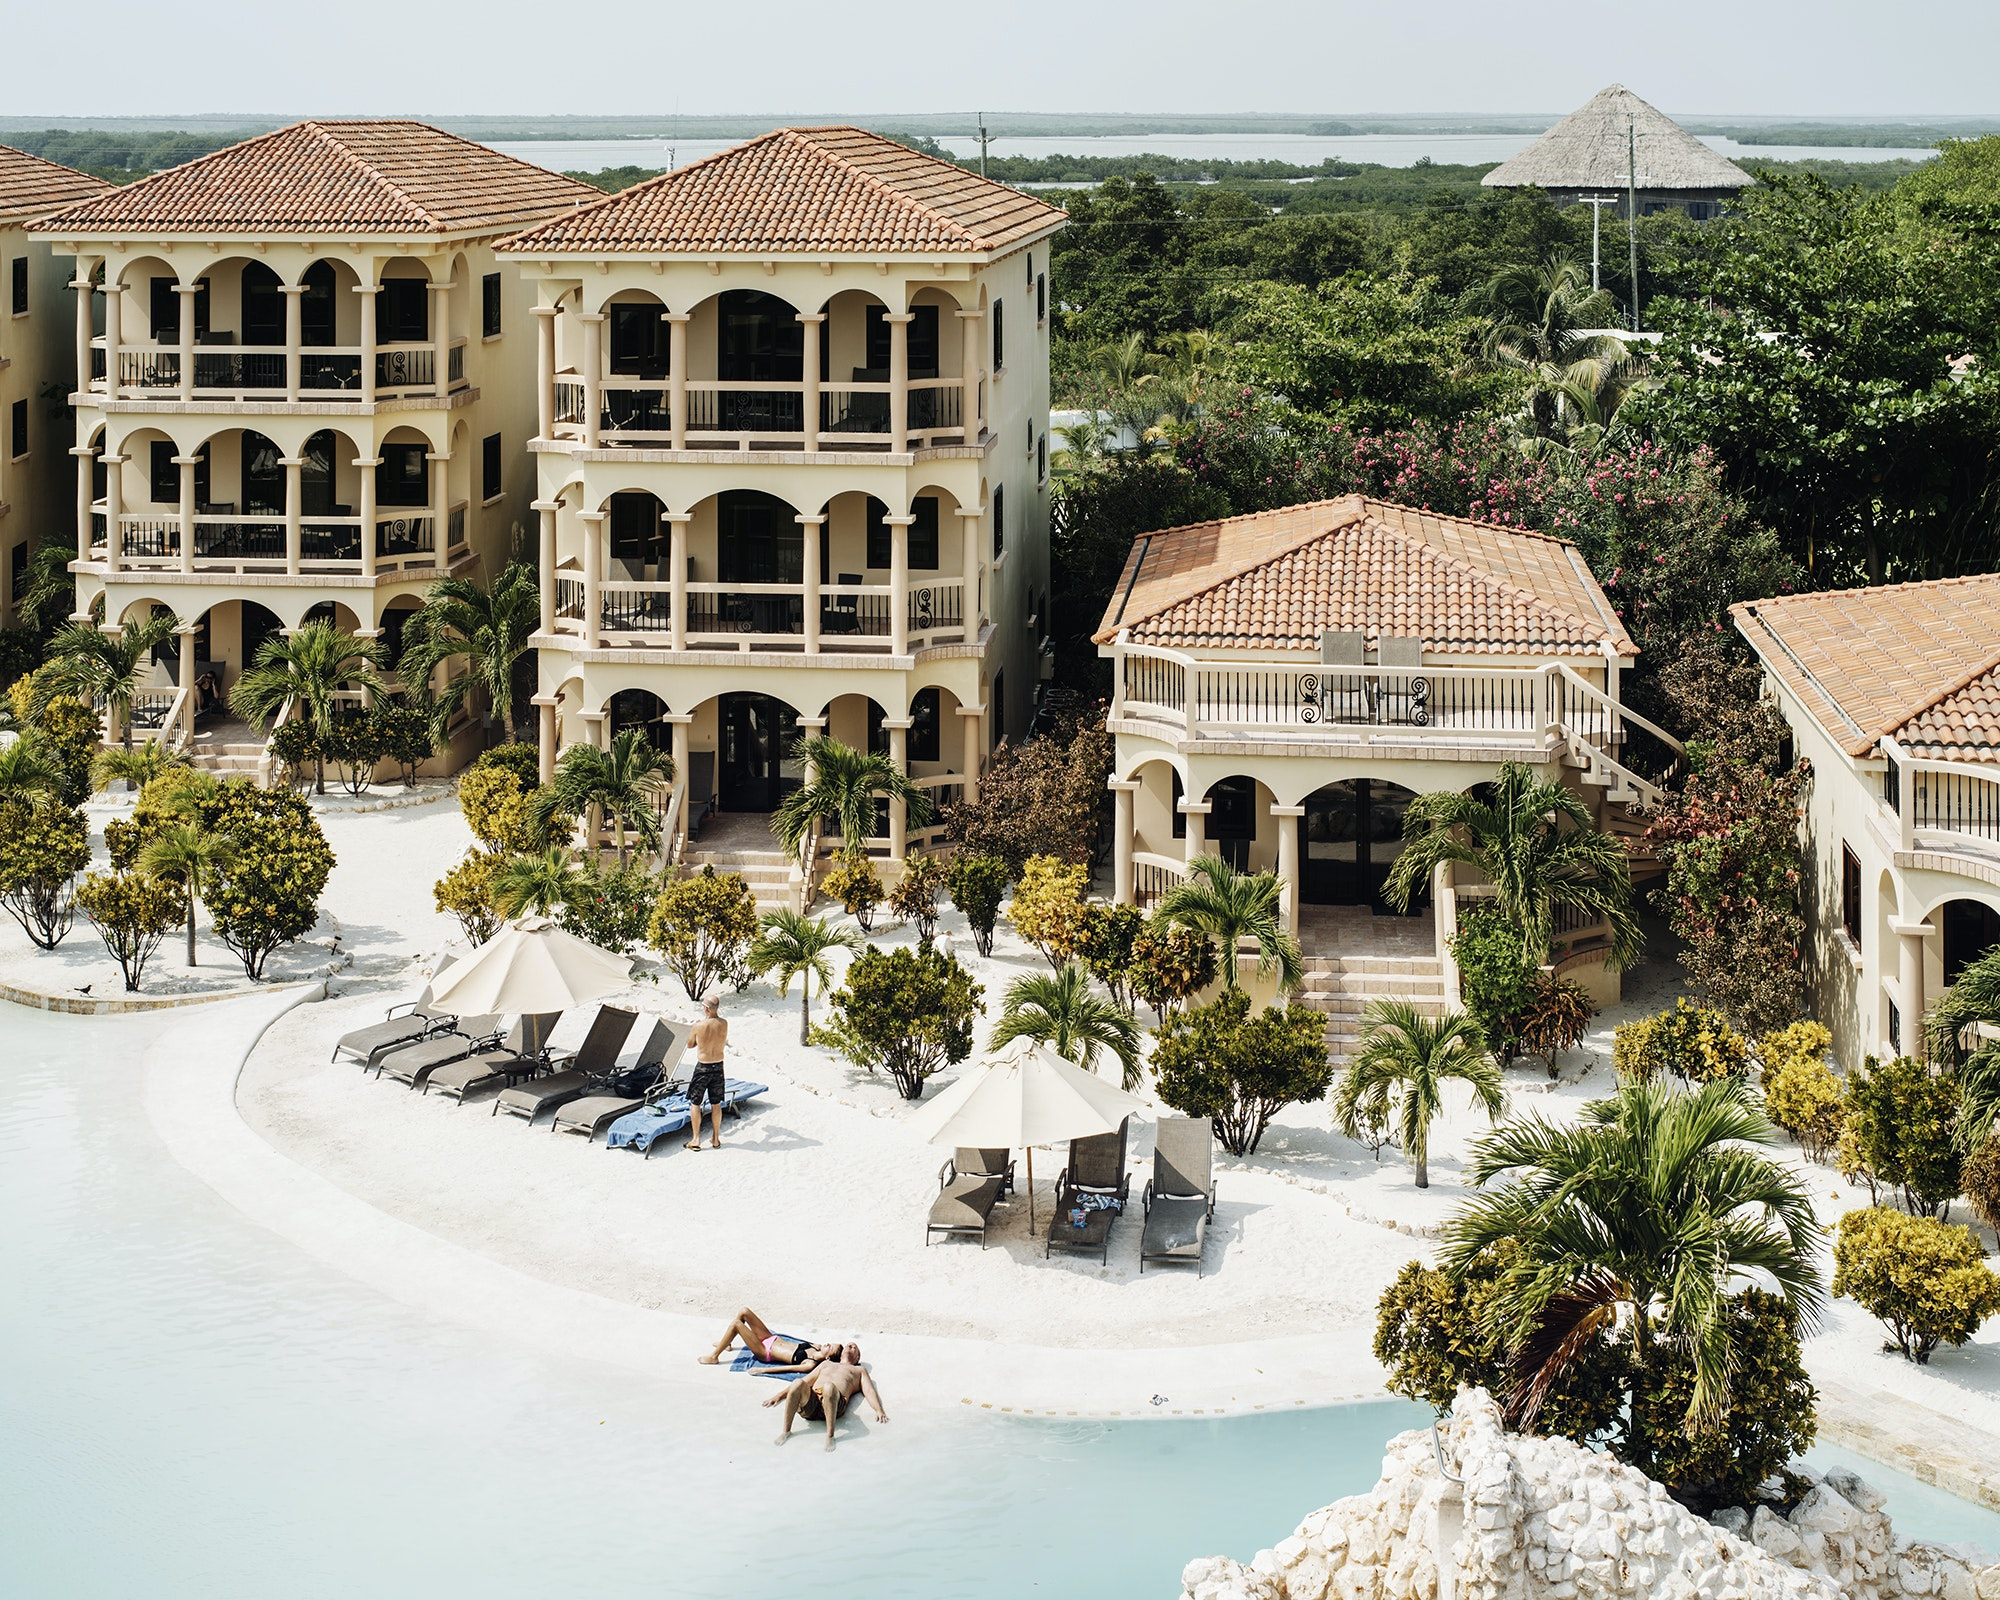 Coco Beach Resort is located on Ambergris Caye—Belize's largest island.